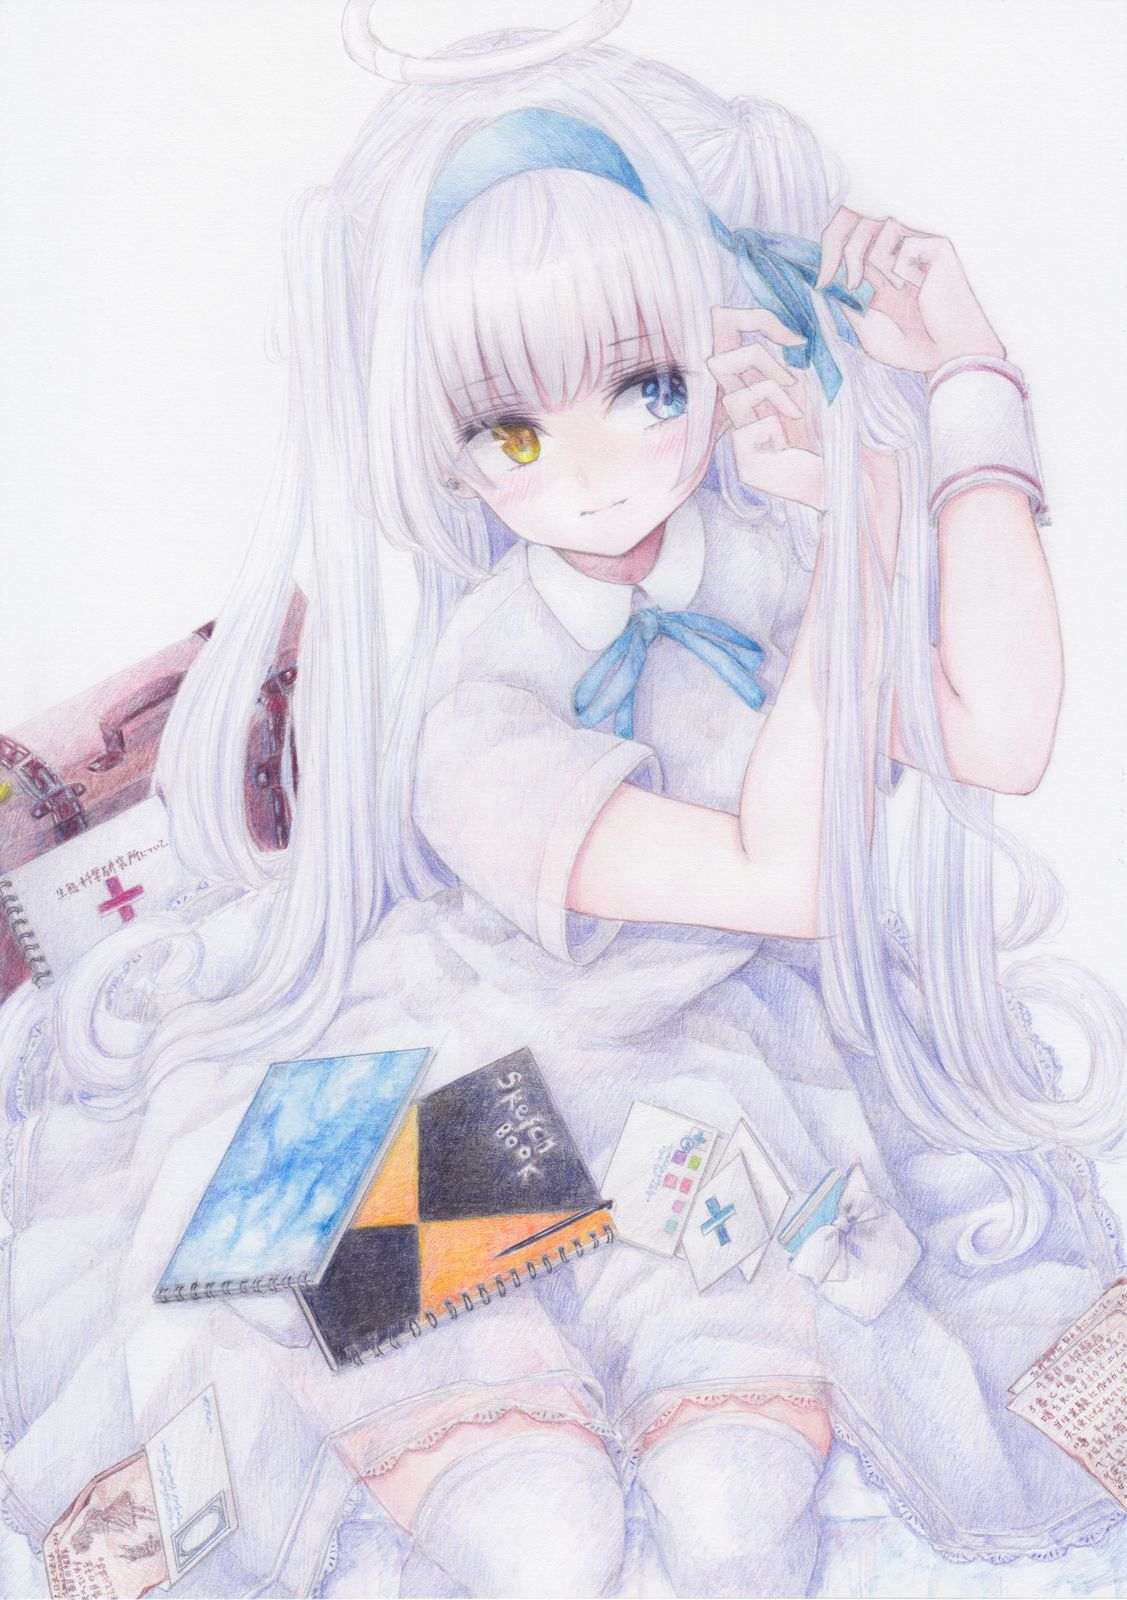 armband bag blush breasts colored_pencil_(medium) darkkanan dress graphite_(medium) hairband halo heterochromia highres kneeling large_breasts long_hair mail original shoes simple_background suitcase thigh-highs traditional_media twintails white_dress white_hair white_legwear